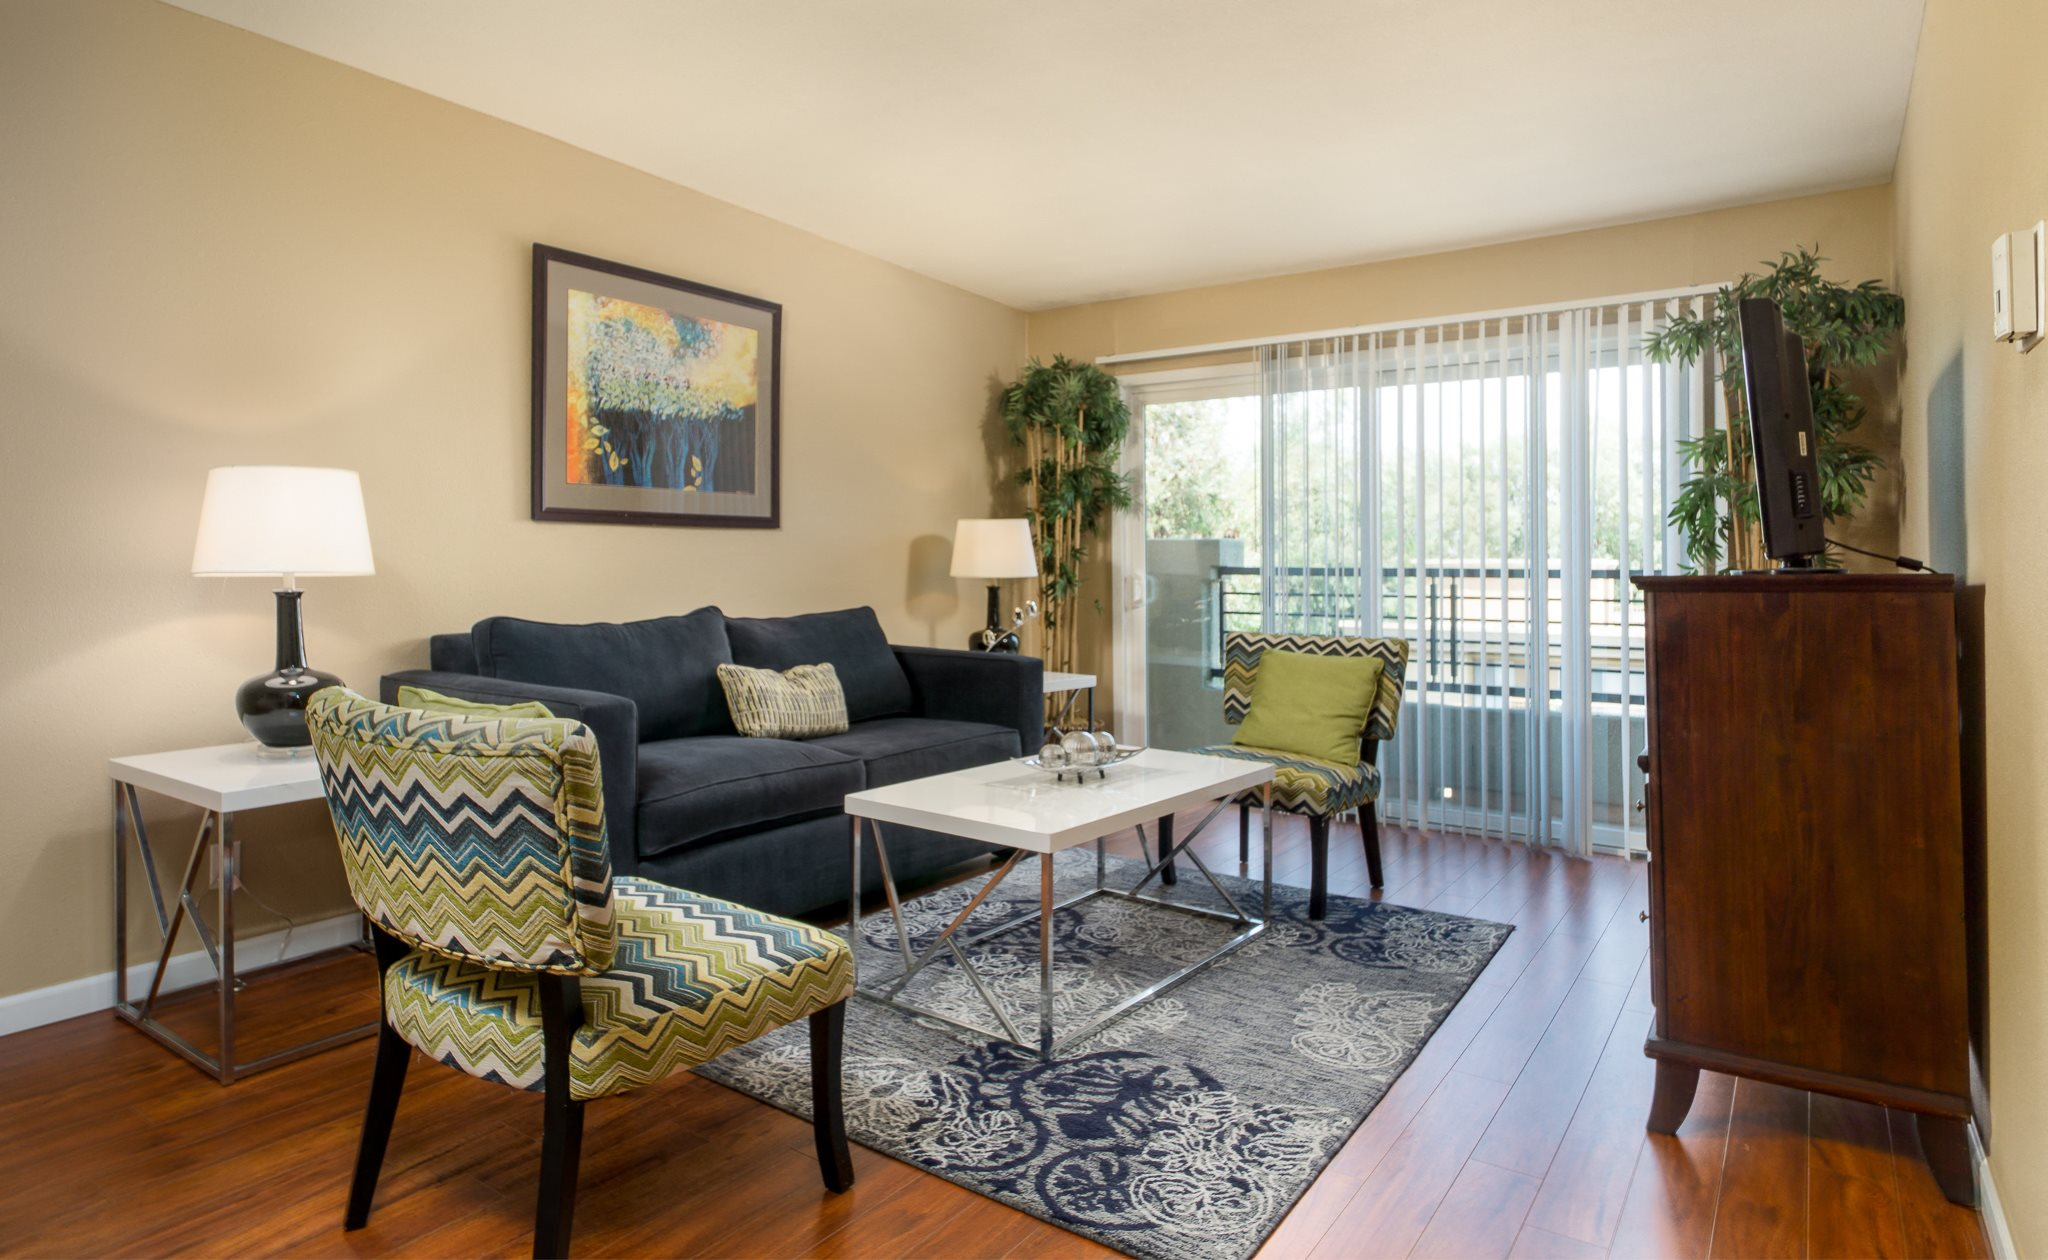 Luxury Woodland Hills, CA Apartments for Rent - The Reserve at Warner Center Living Room with Wood-Style Flooring and Access to Balcony